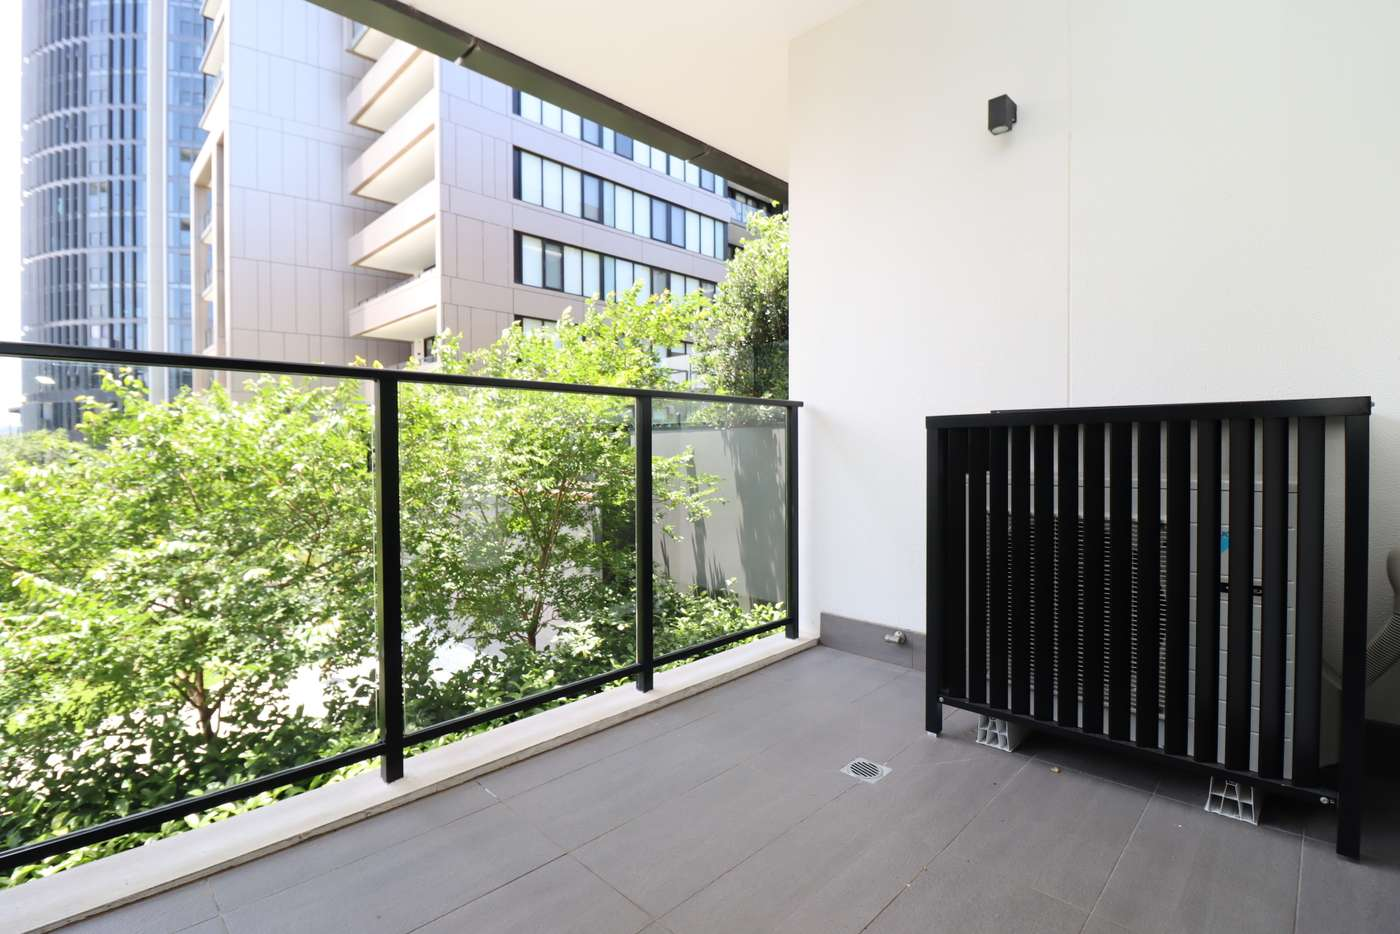 Seventh view of Homely apartment listing, C318/46 Savona Dr, Wentworth Point NSW 2127